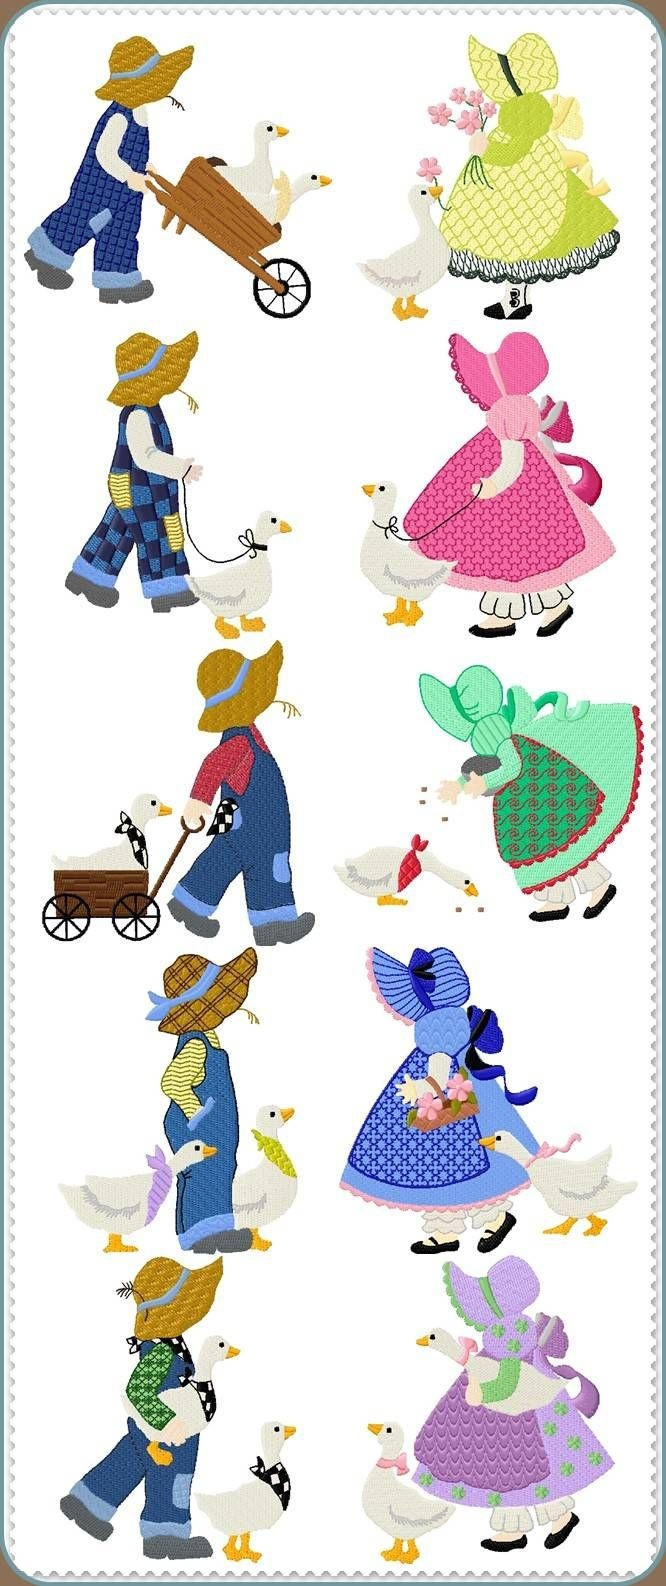 Sunbonnet Sue Printable Pattern | Sunbonnet Sue Quilt Blocks And - Free Printable Dutch Girl Quilt Pattern